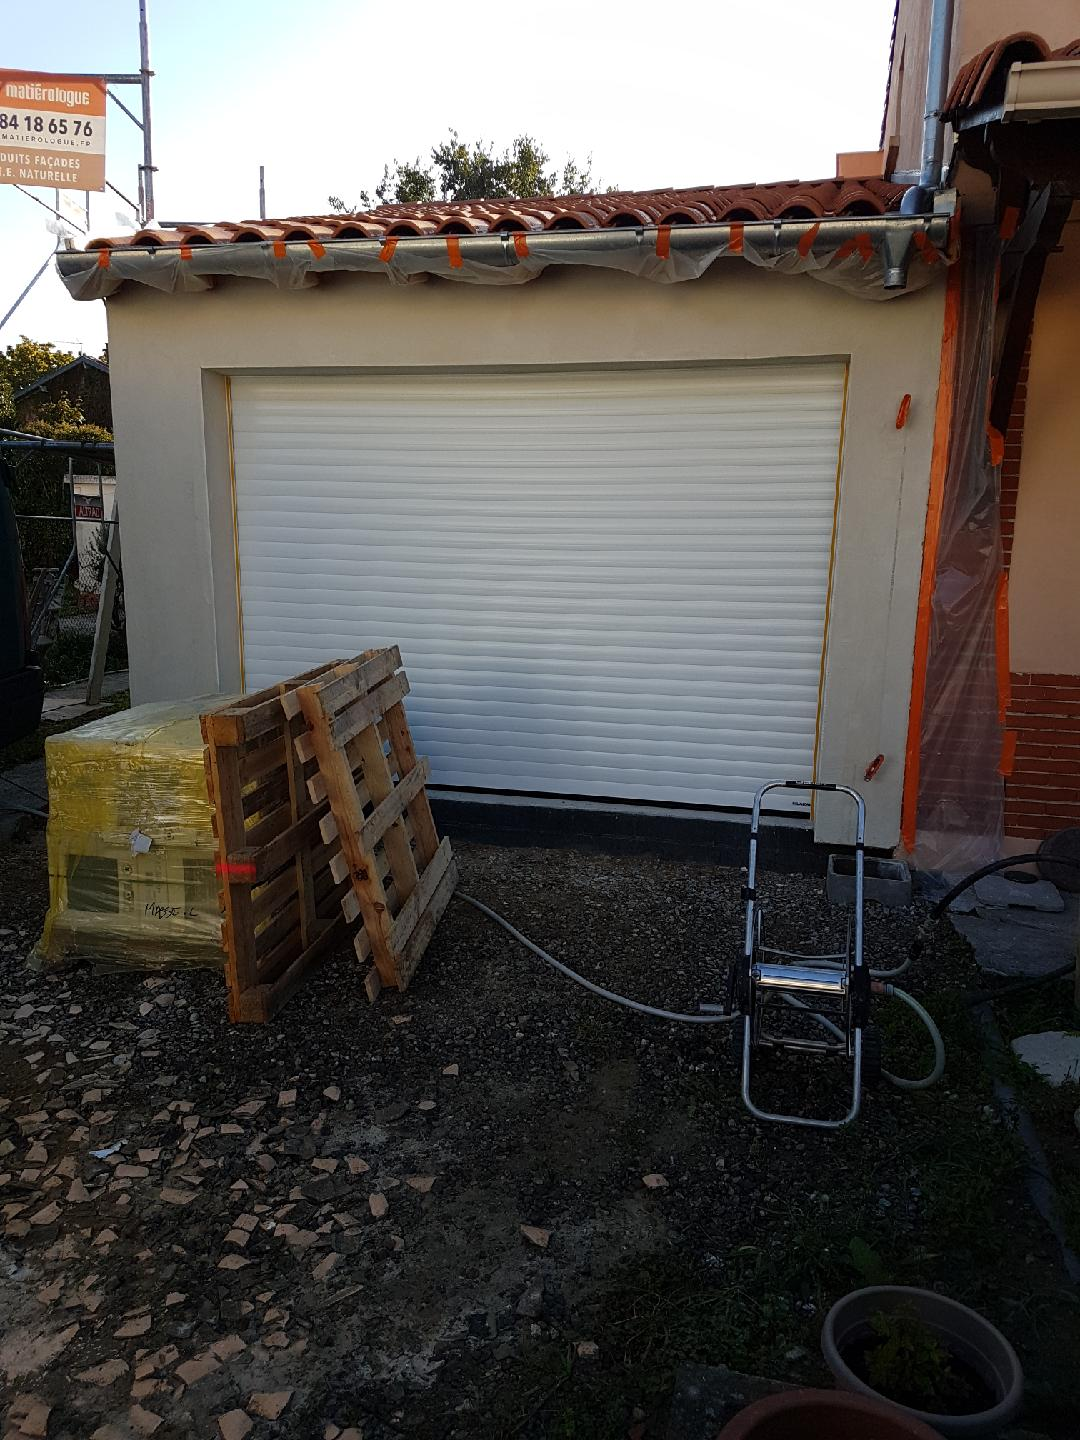 PORTE GARAGE ENROULABLE copie